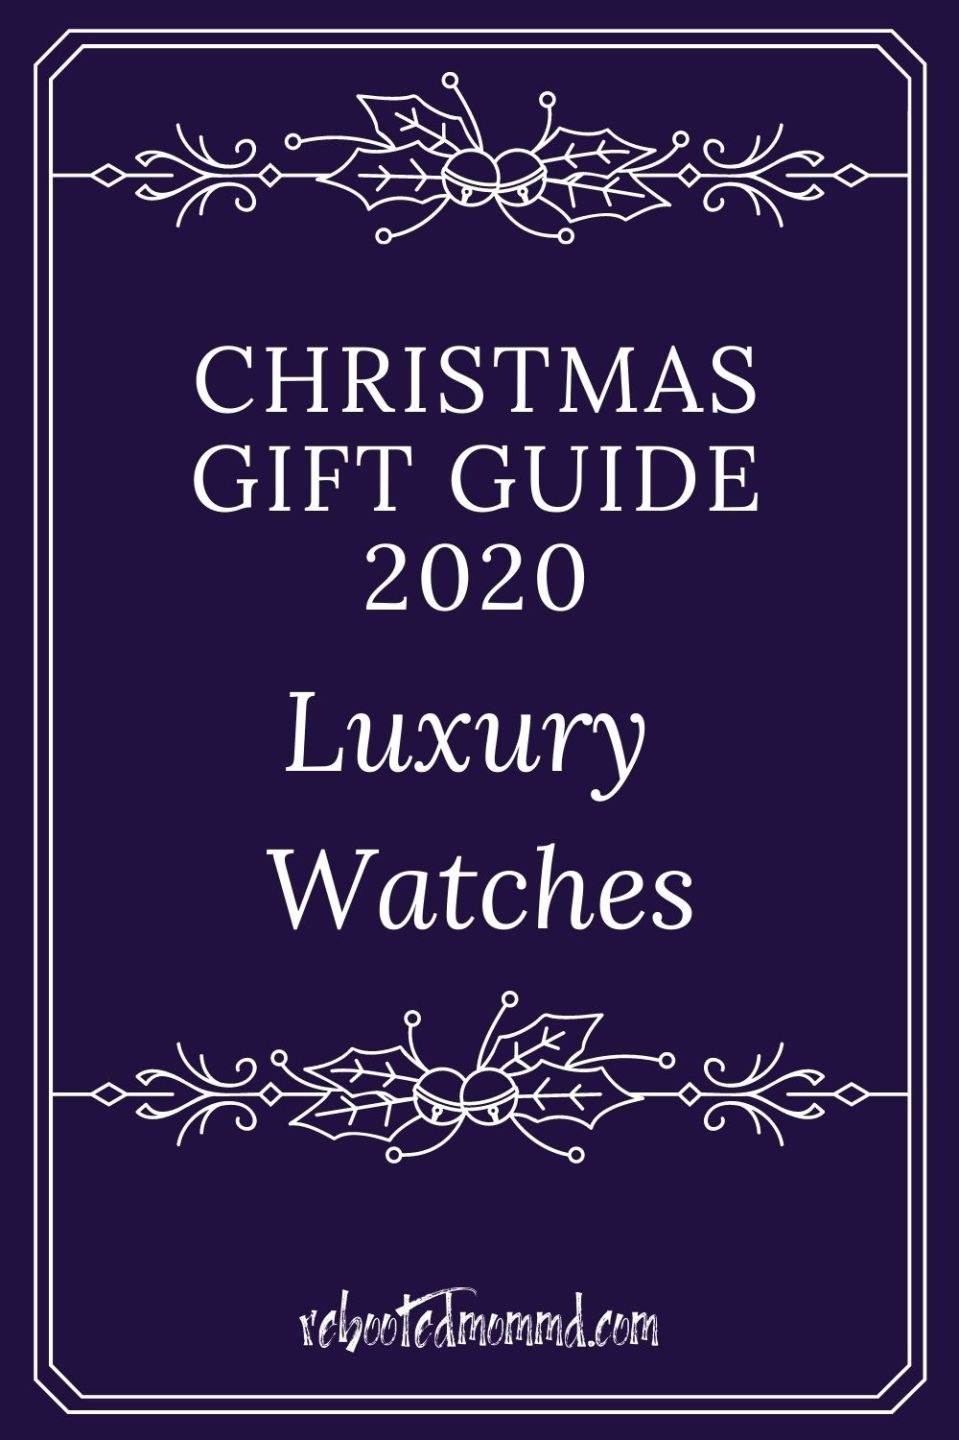 Christmas Gift Guide 2020: Luxury Watches